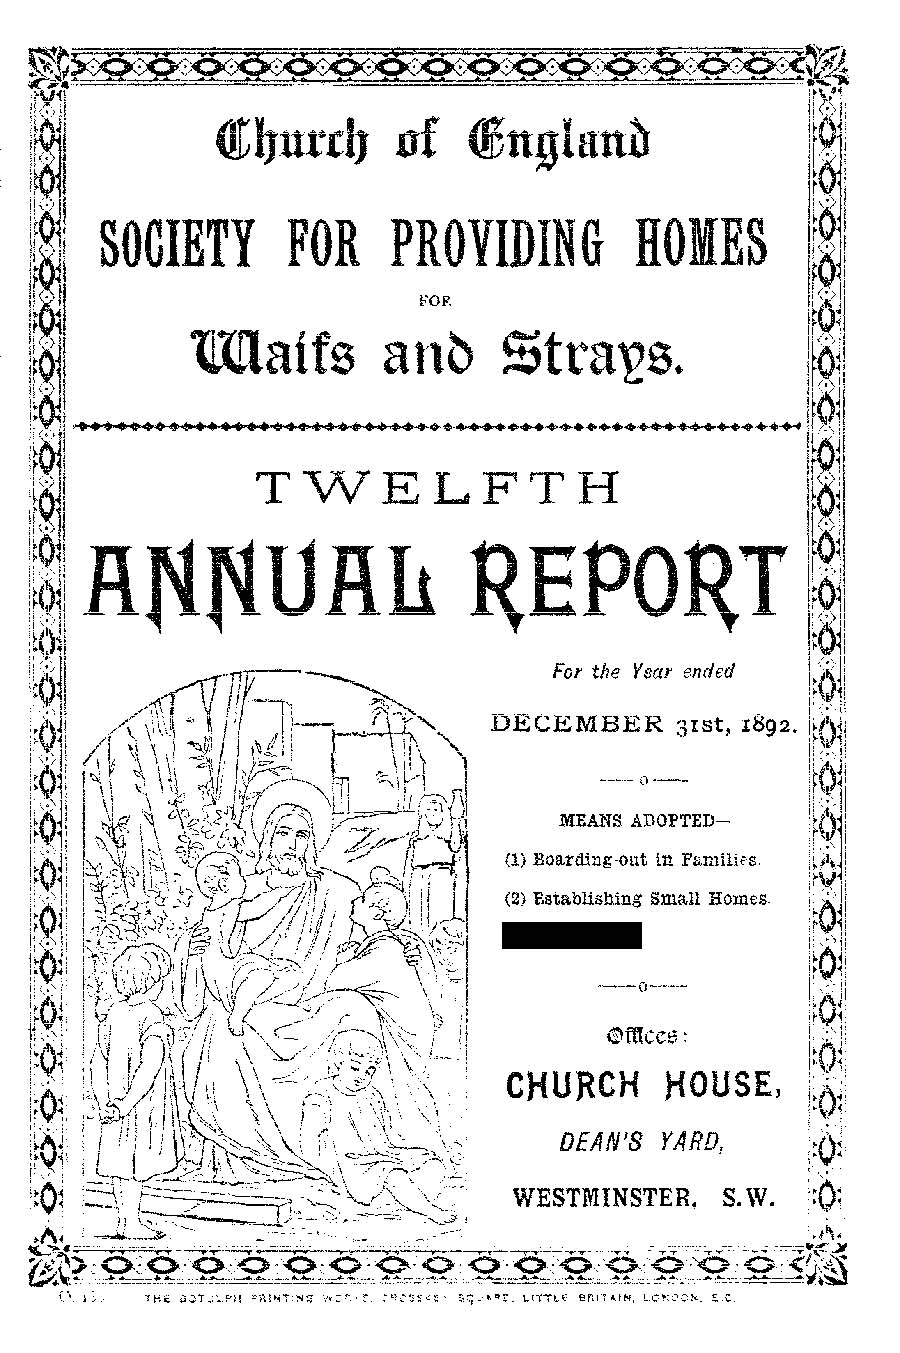 Annual Report 1892 - page 1